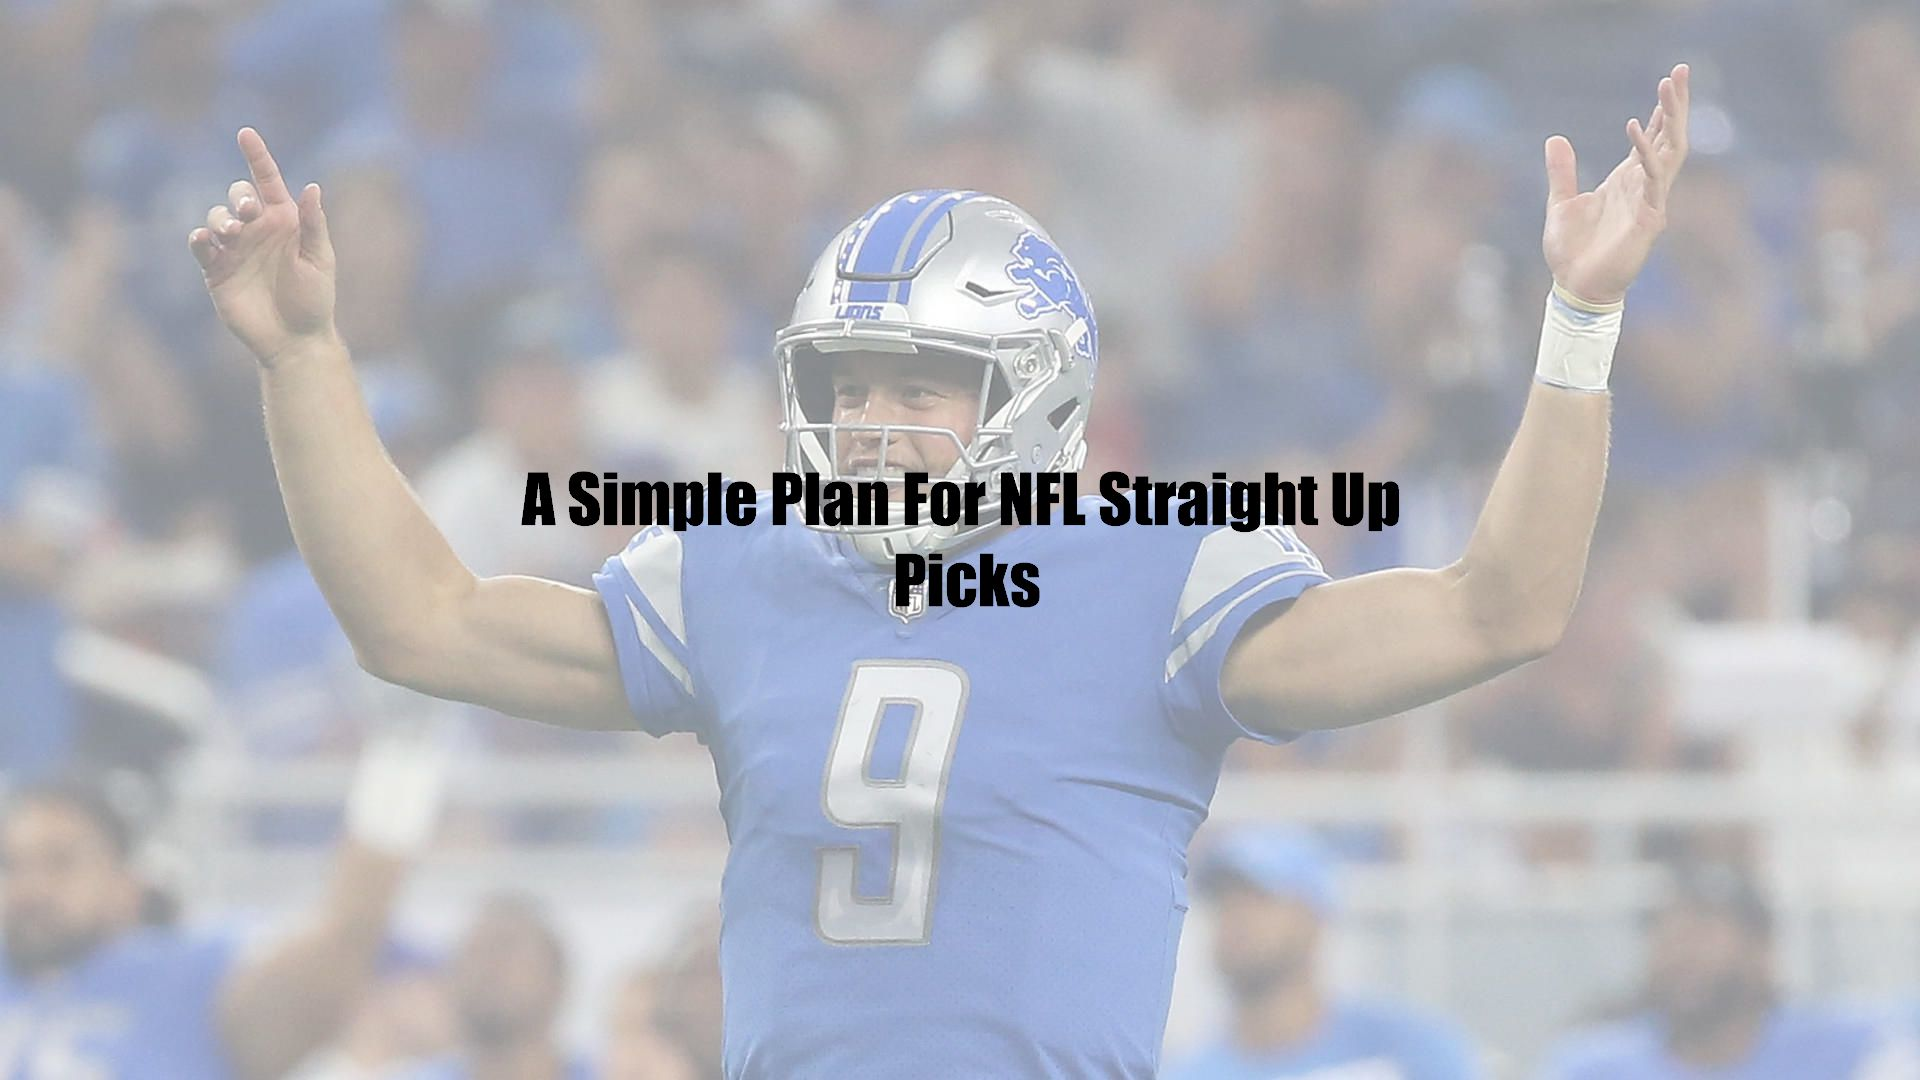 A Simple Plan For NFL Straight Up Picks